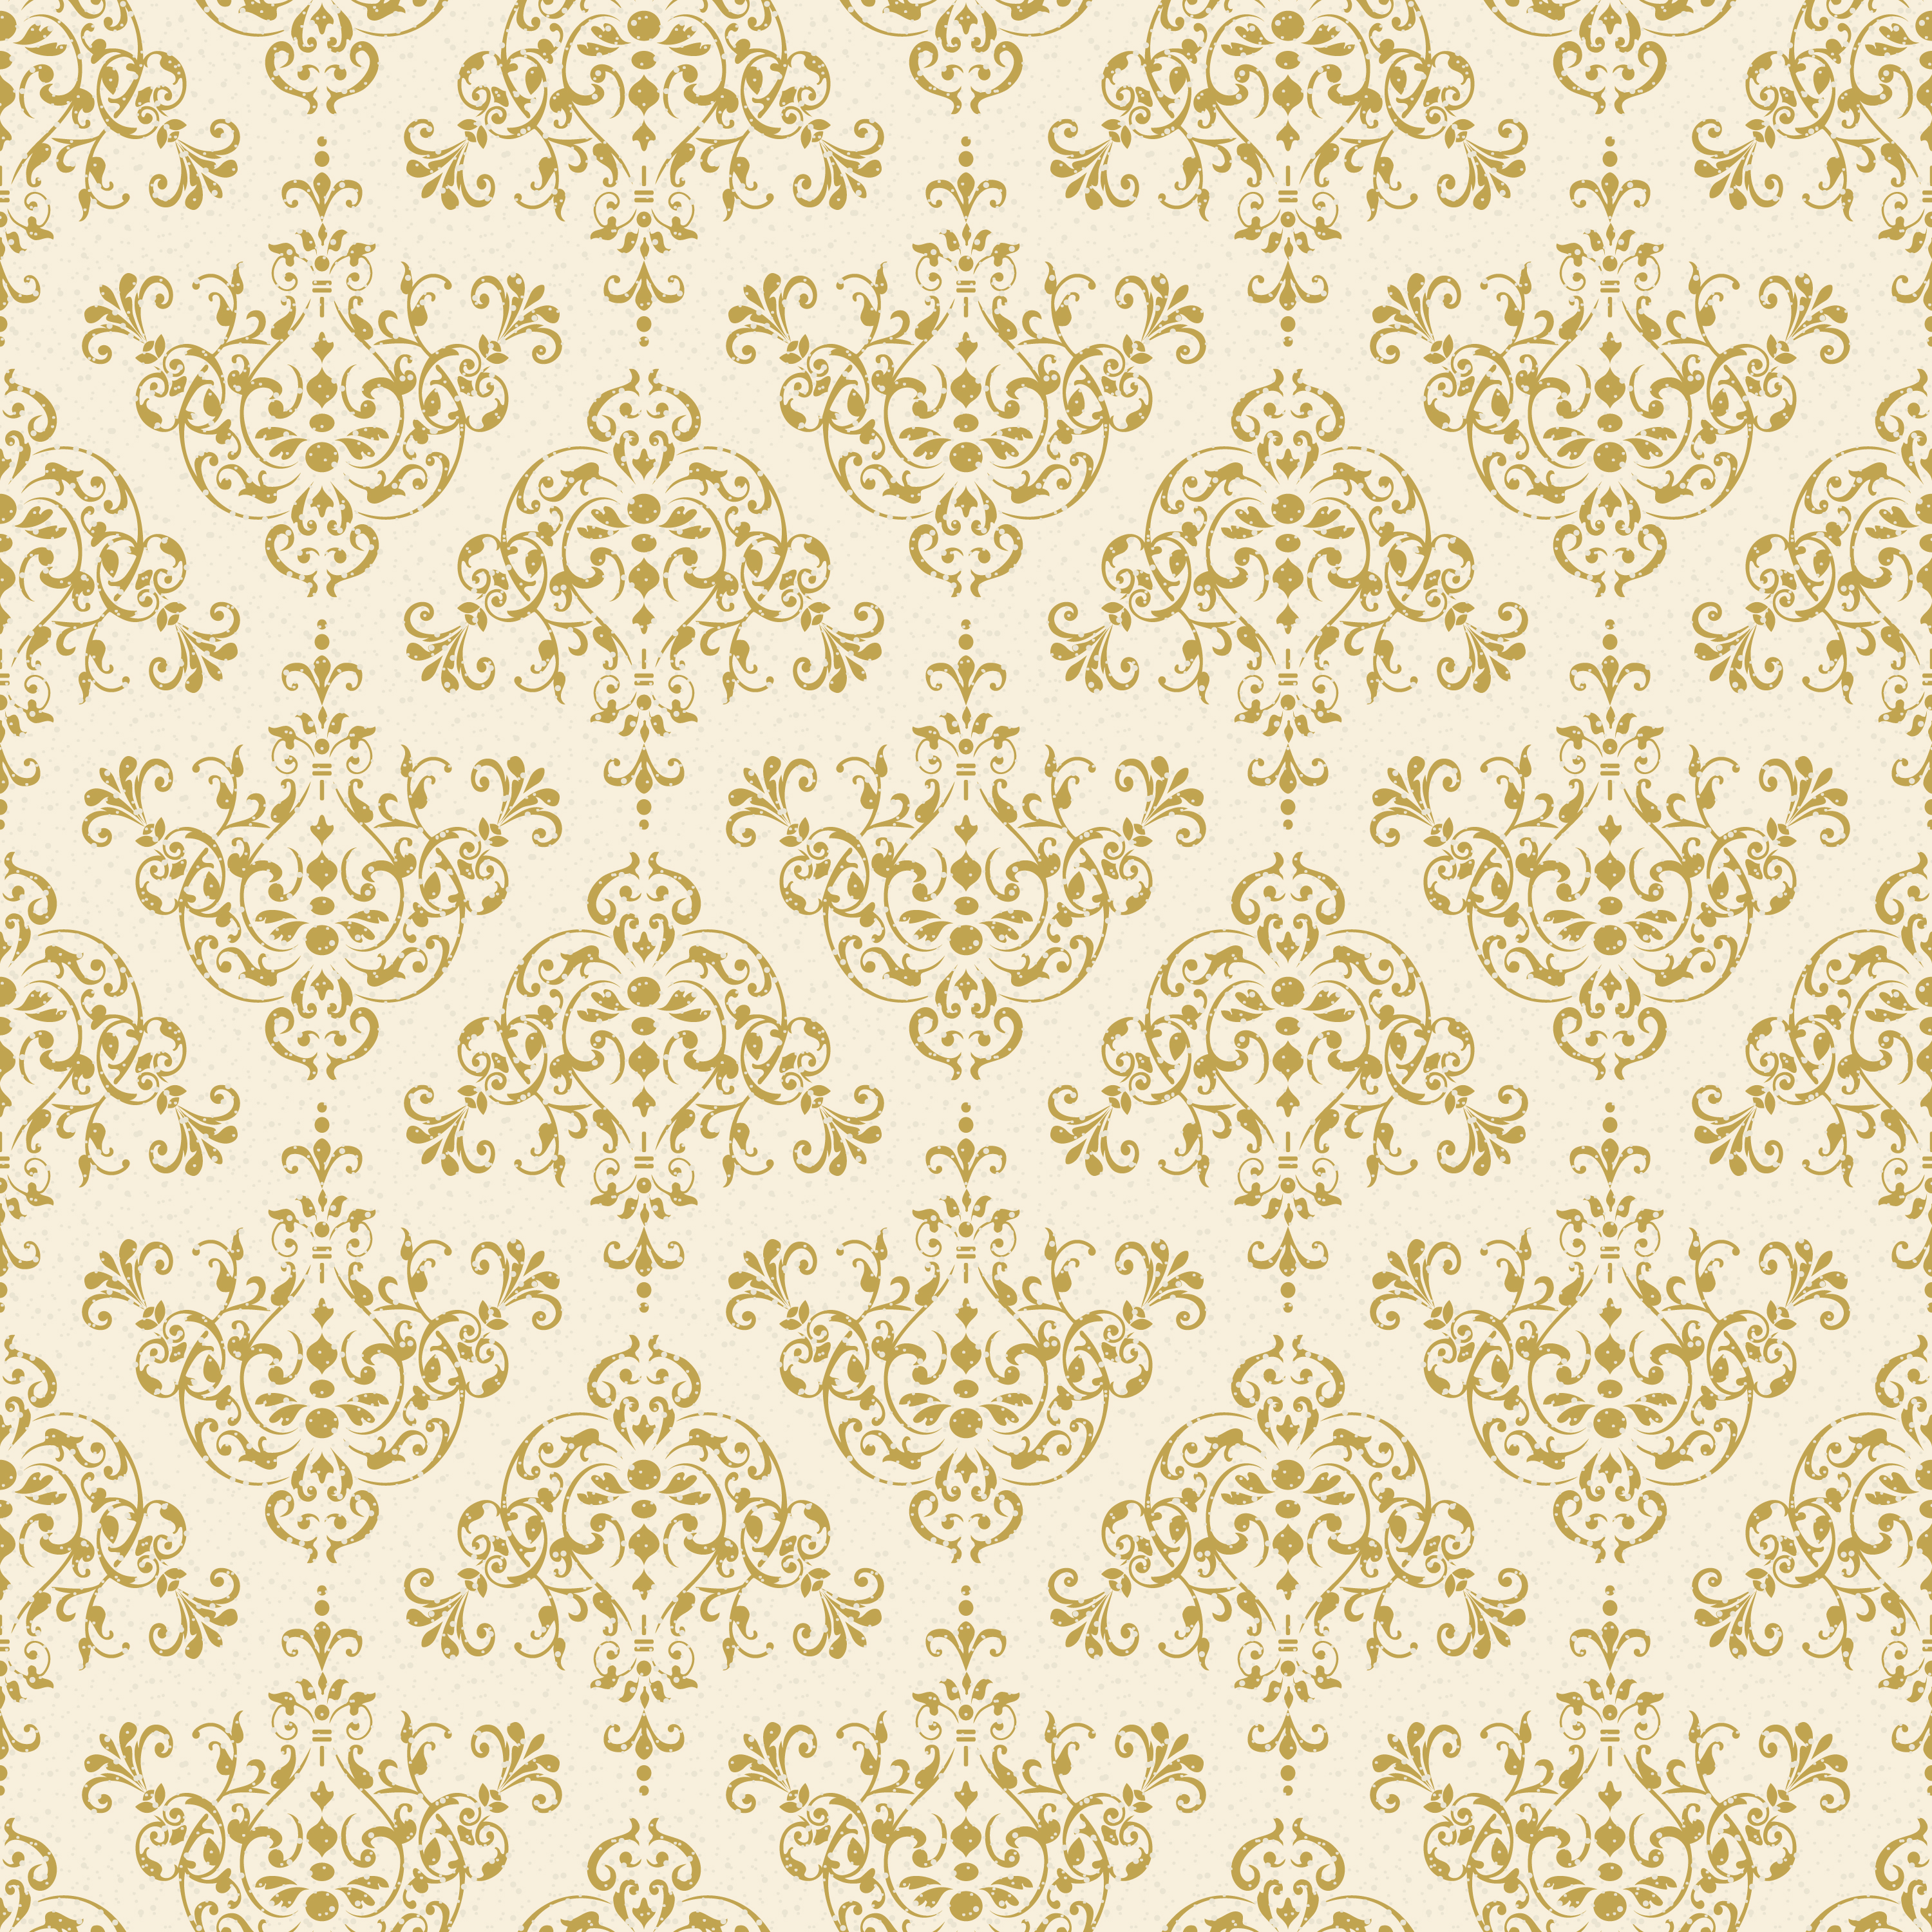 Seamless Gold Intricate Decorative Damask Pattern 1156224 Vector Art At Vecteezy